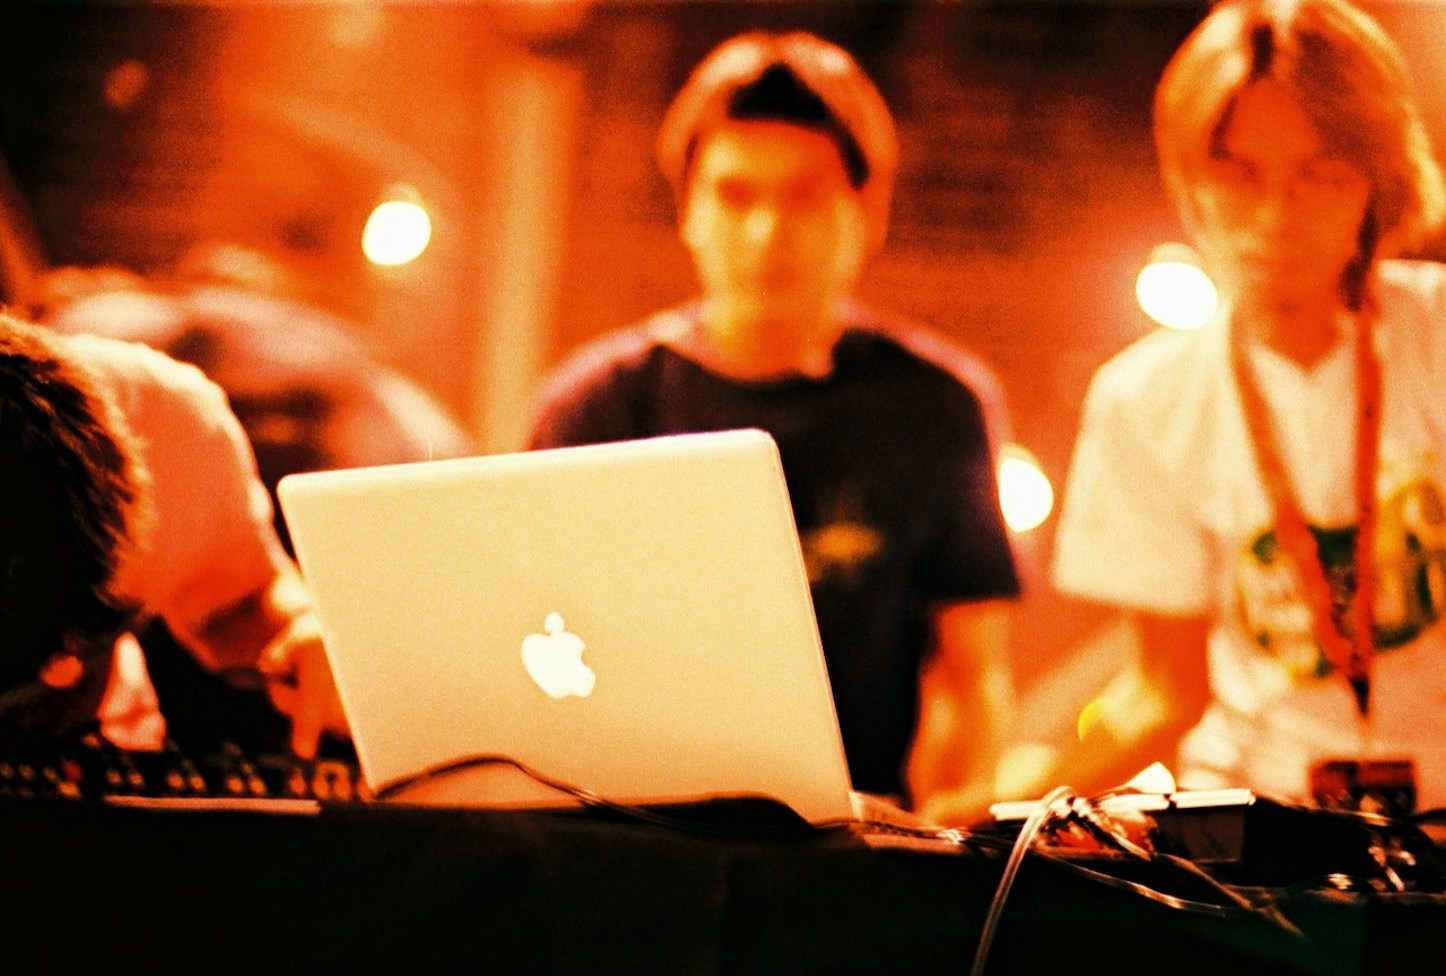 Dj using mac